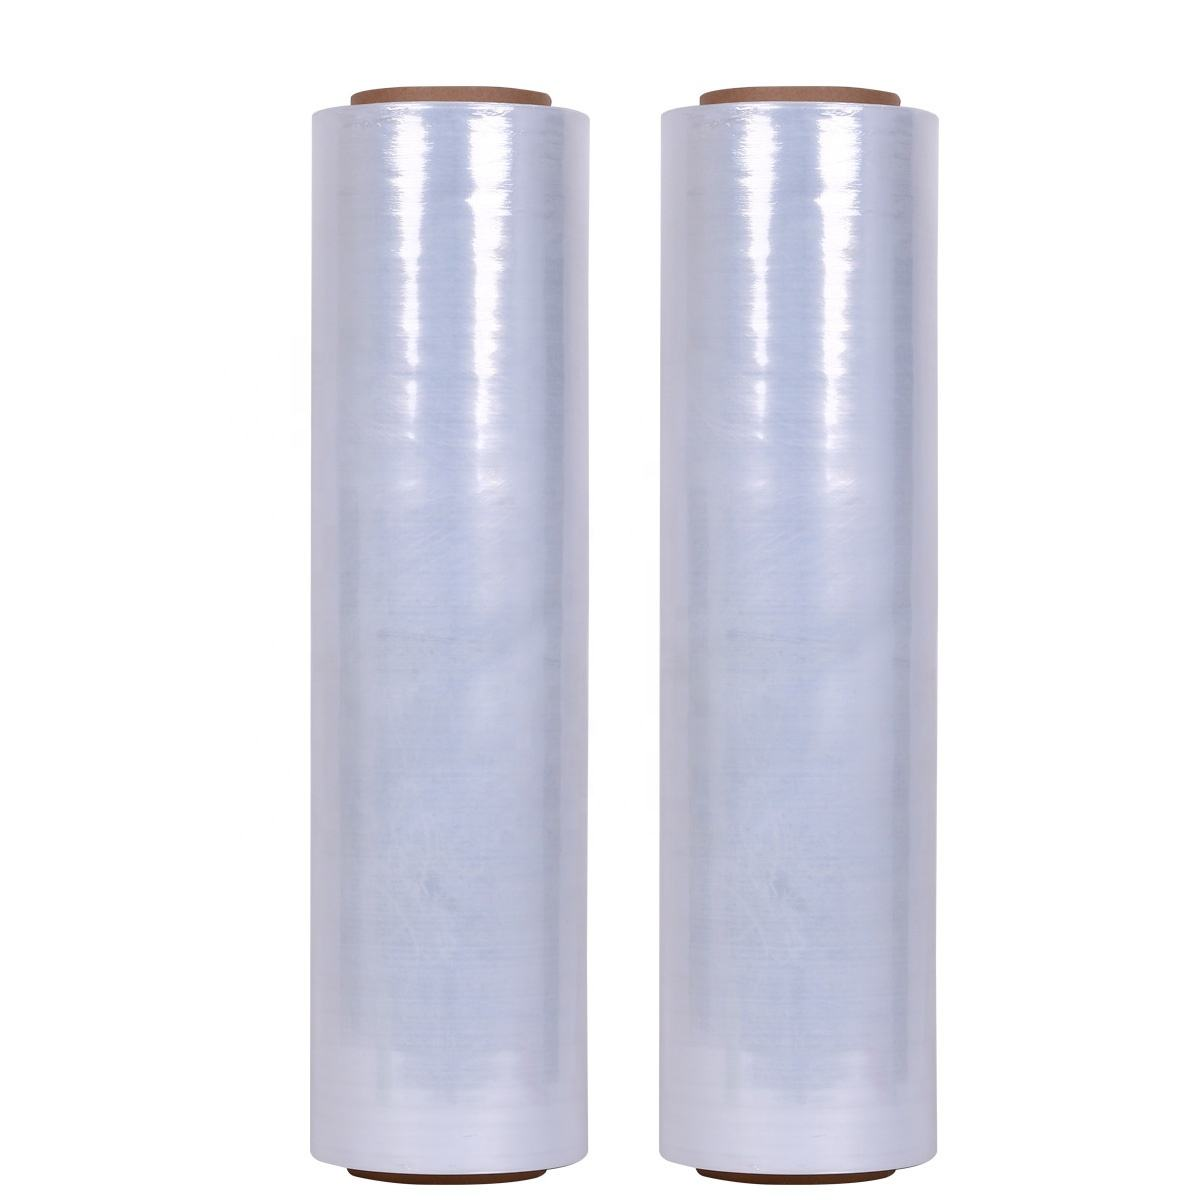 16 Years Manufacturer Free Samples Packaging Plastic Shrink Wrap LLDPE Stretch Film